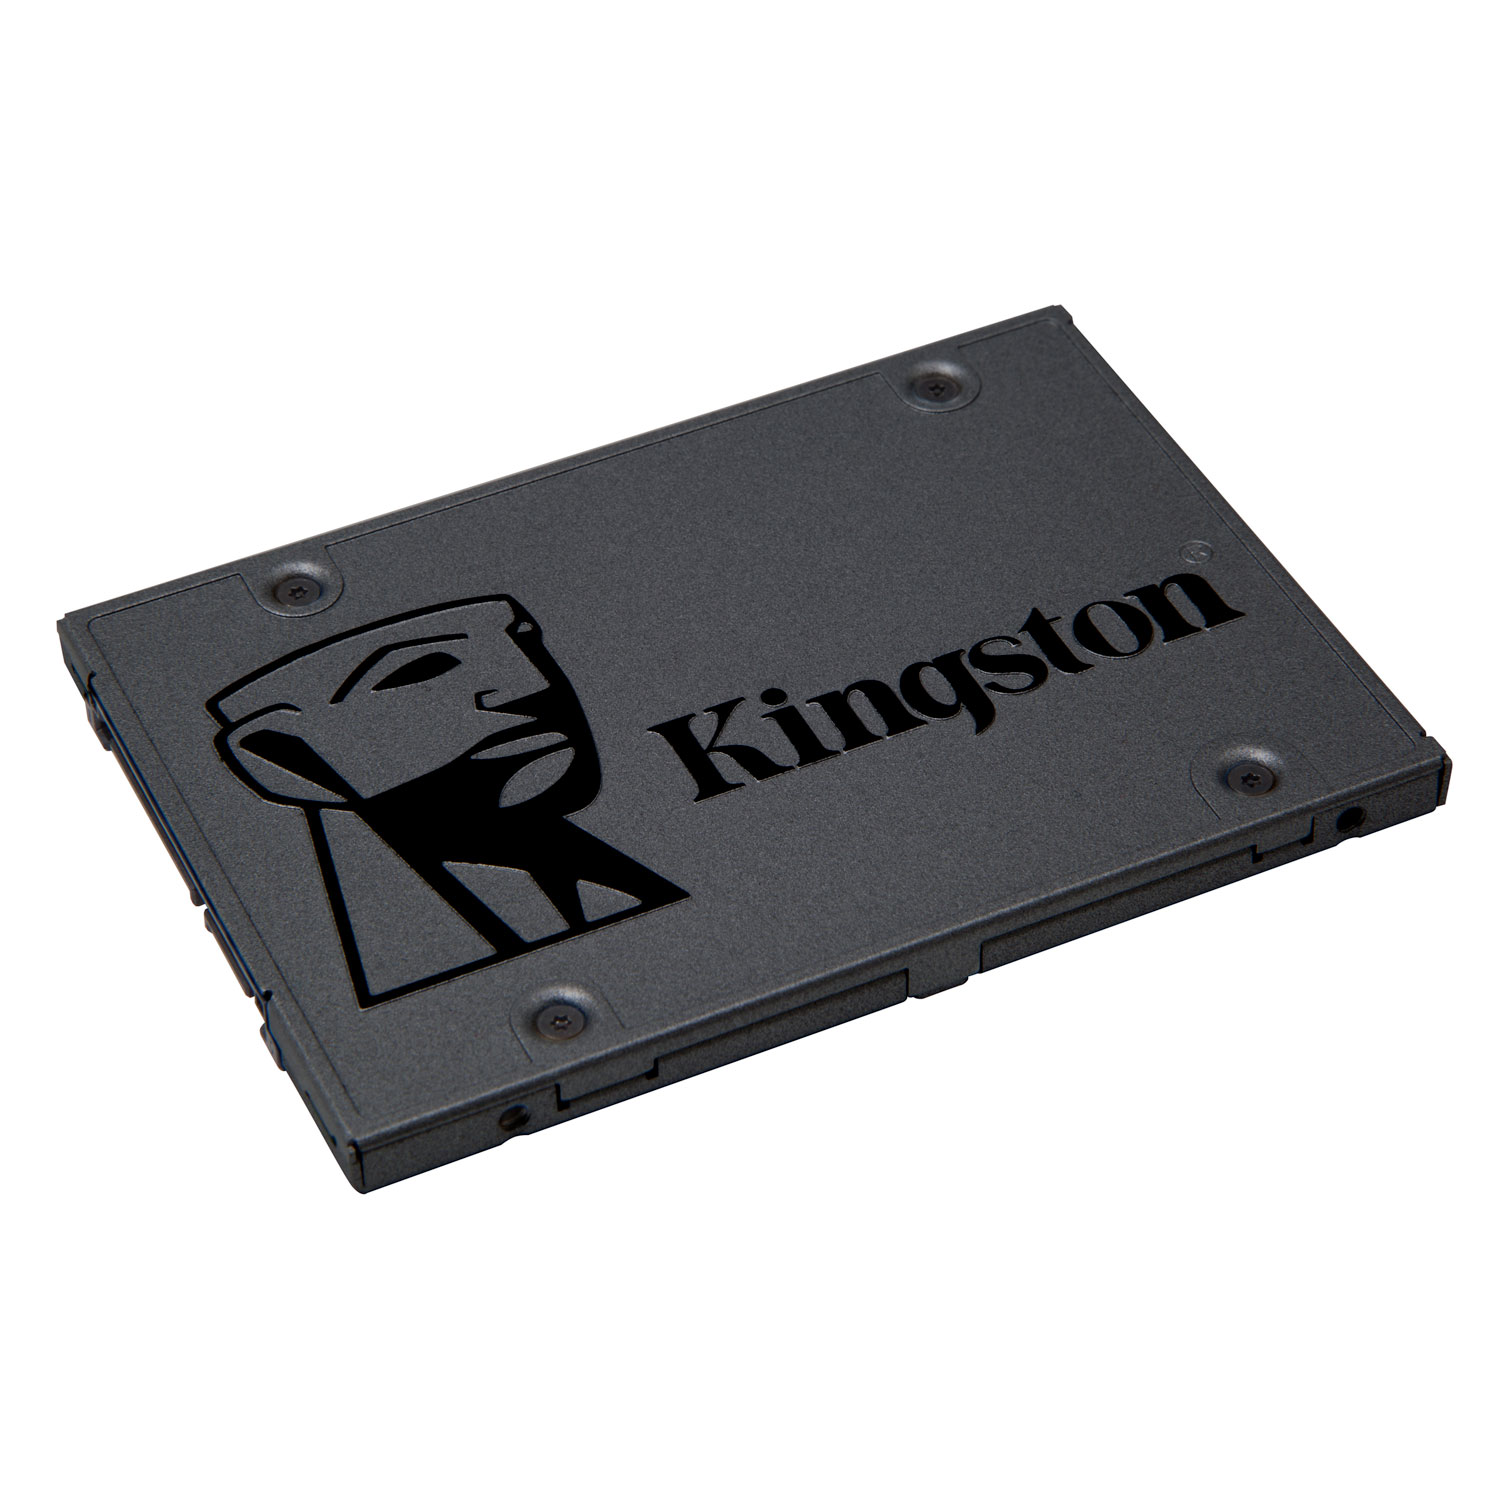 "Disque SSD Kingston SSD A400 960 Go SSD 960 Go 2.5"" 7mm Serial ATA 6Gb/s"